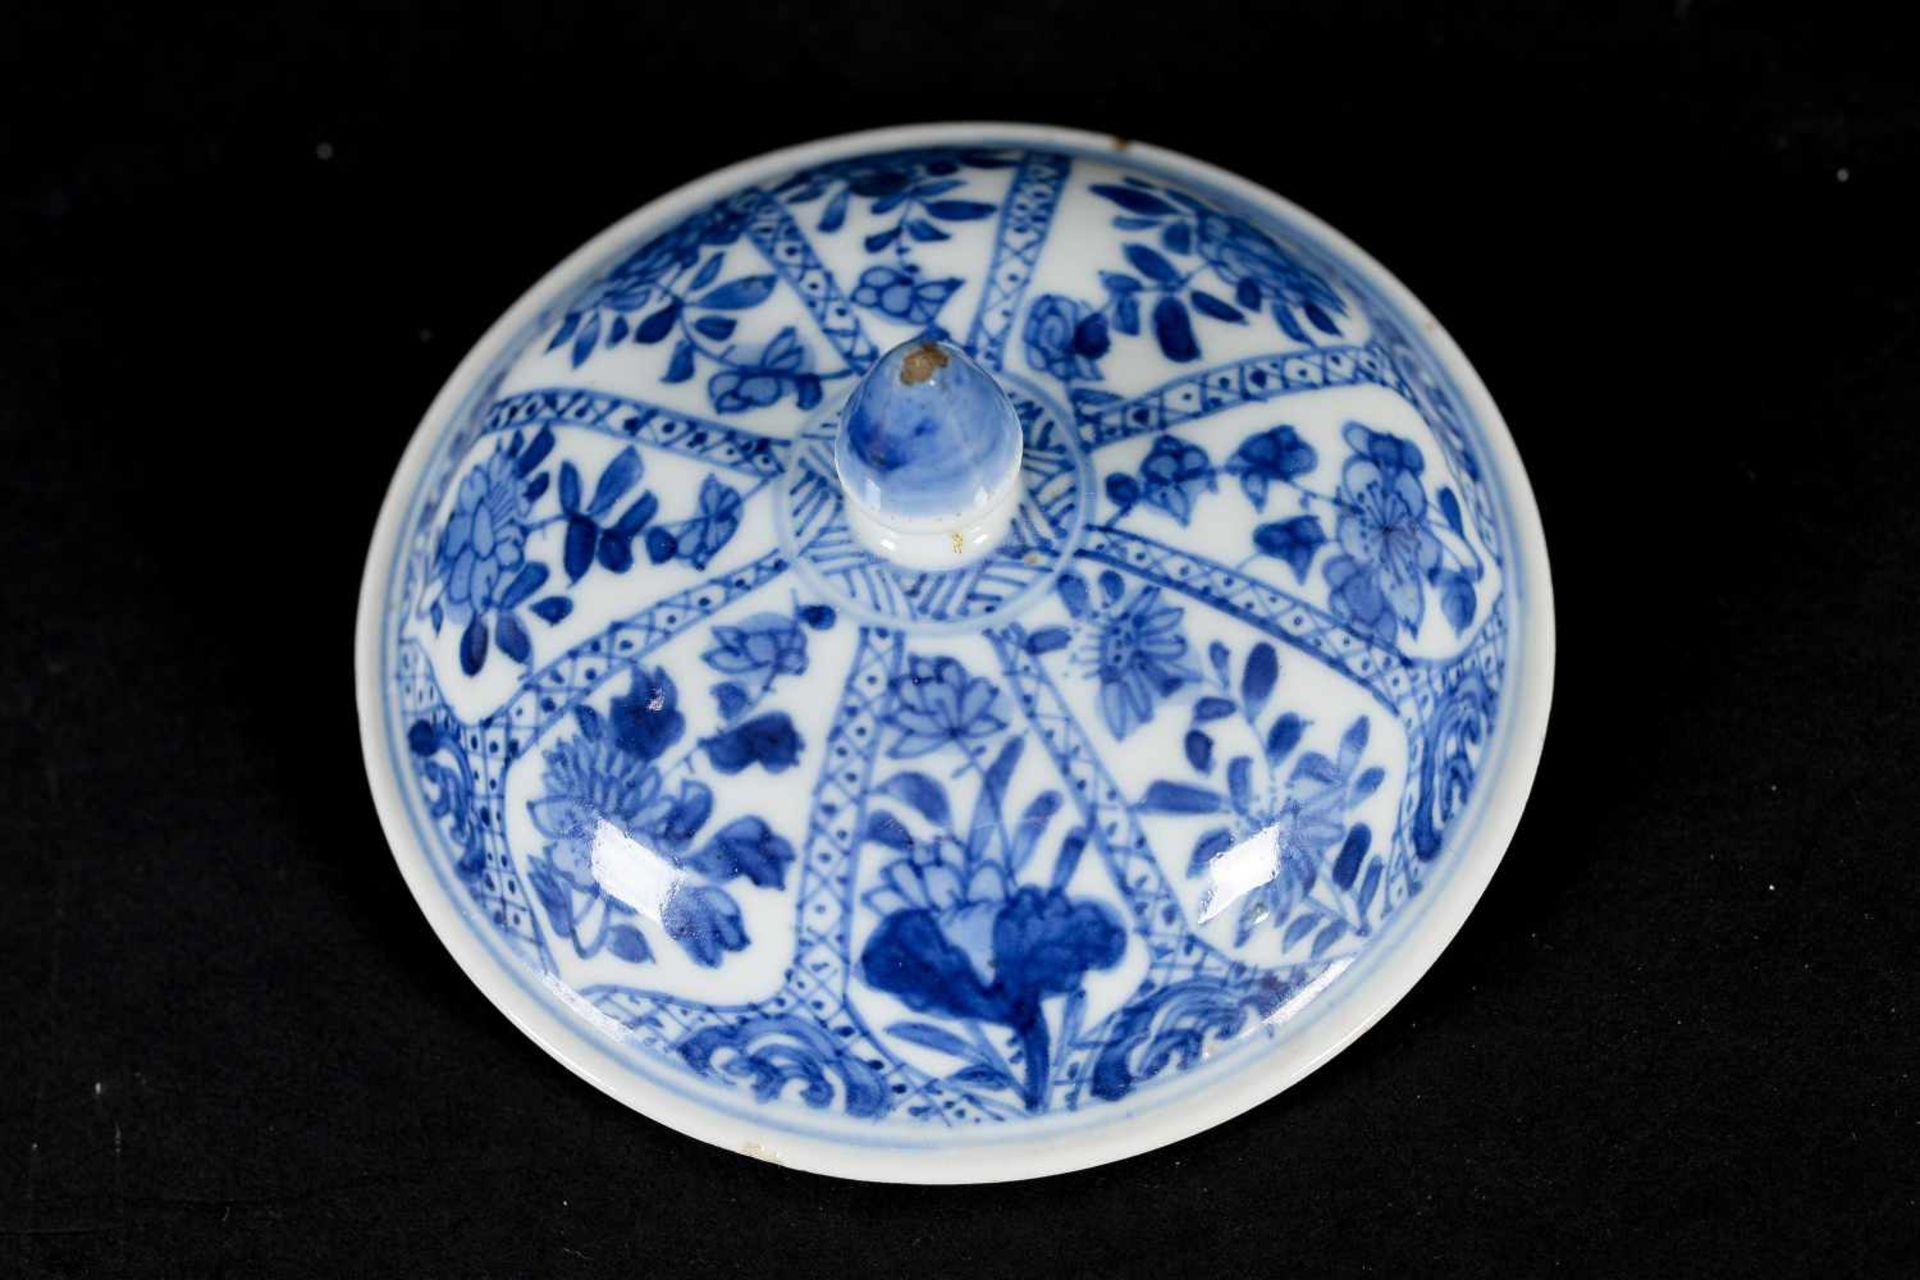 A blue and white porcelain lidded cup with two handles on a deep saucer, decorated with flowers. - Bild 6 aus 9